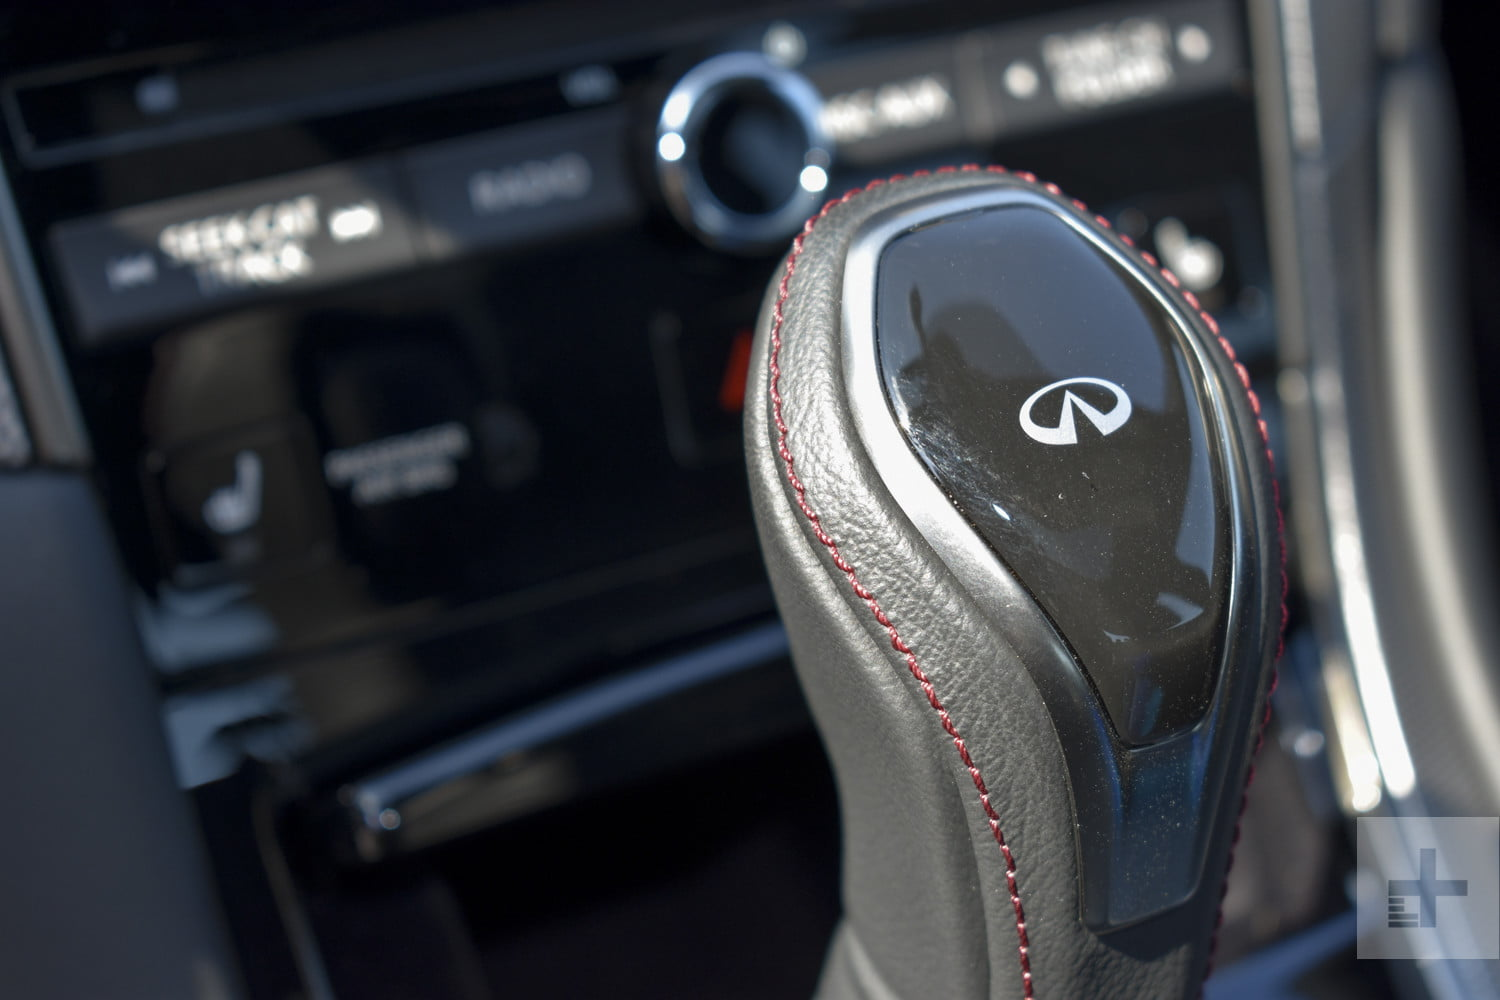 2018 infiniti android auto.  2018 2018 infiniti q50 closeup detail shot of the gear shifter in infiniti android auto